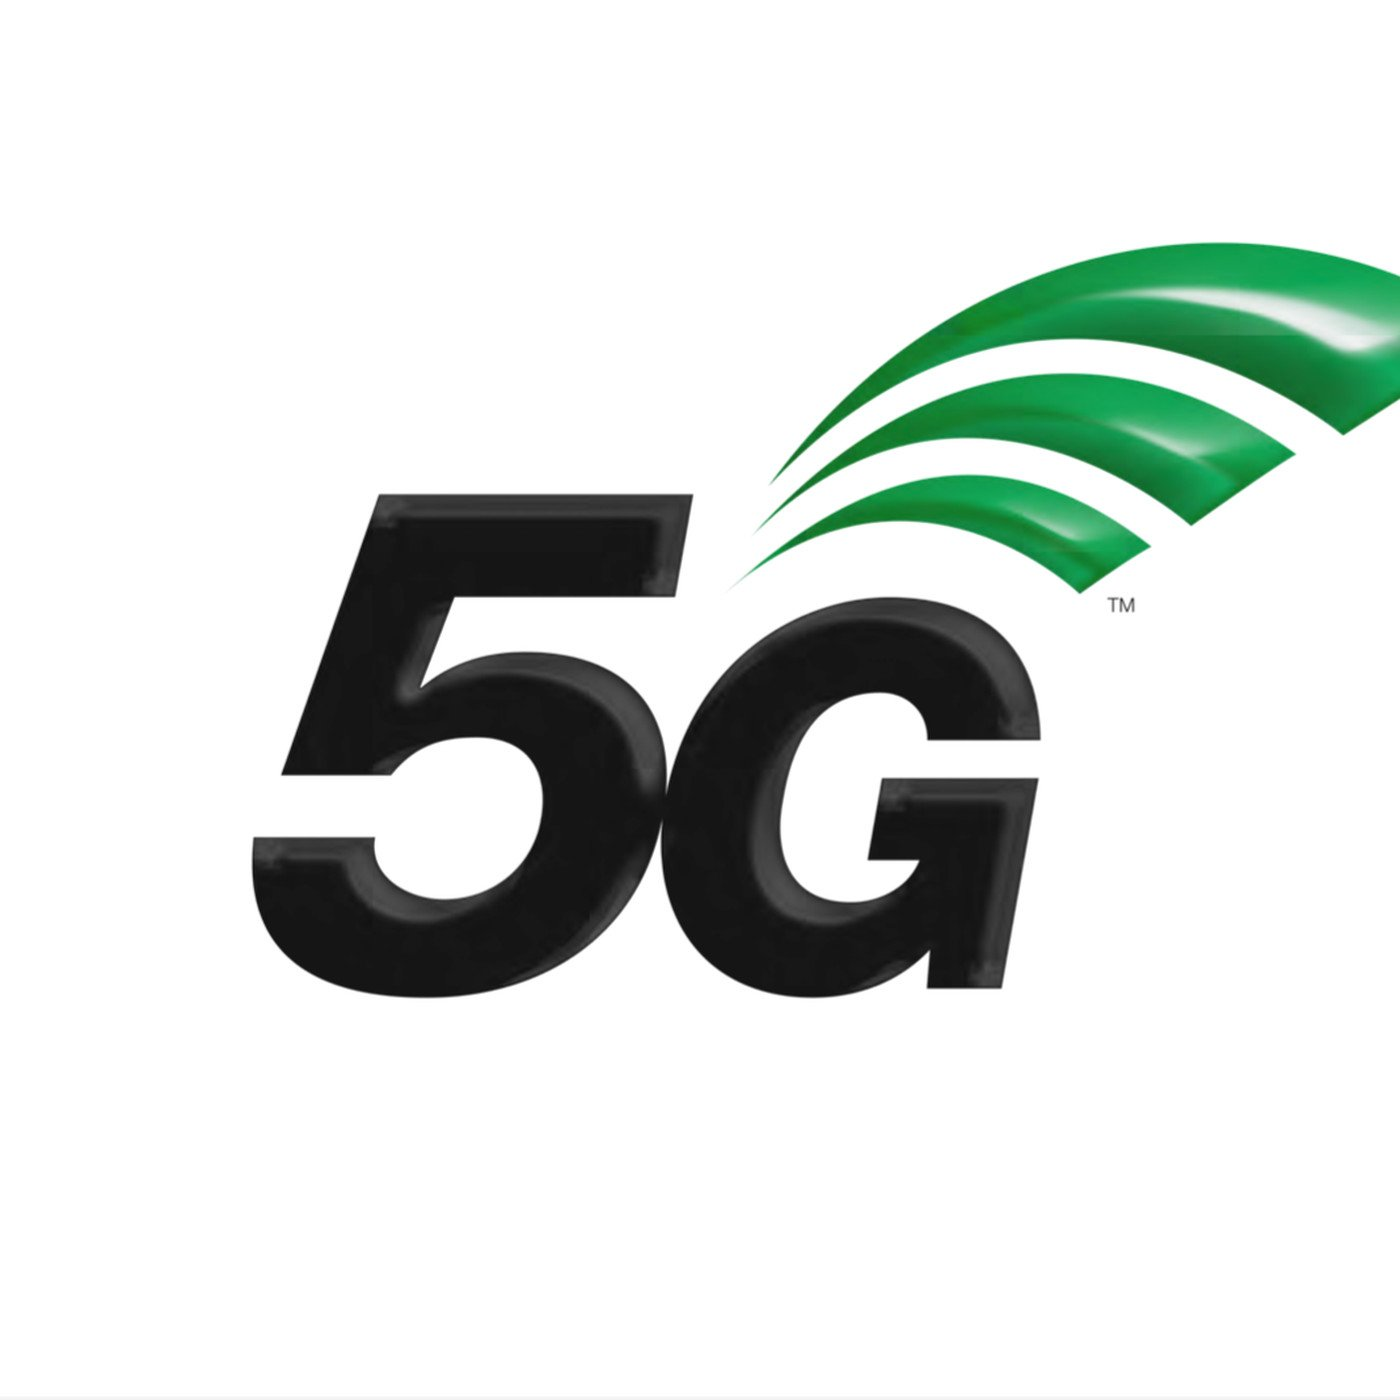 Laval among cities where Rogers is deploying 5G in Quebec